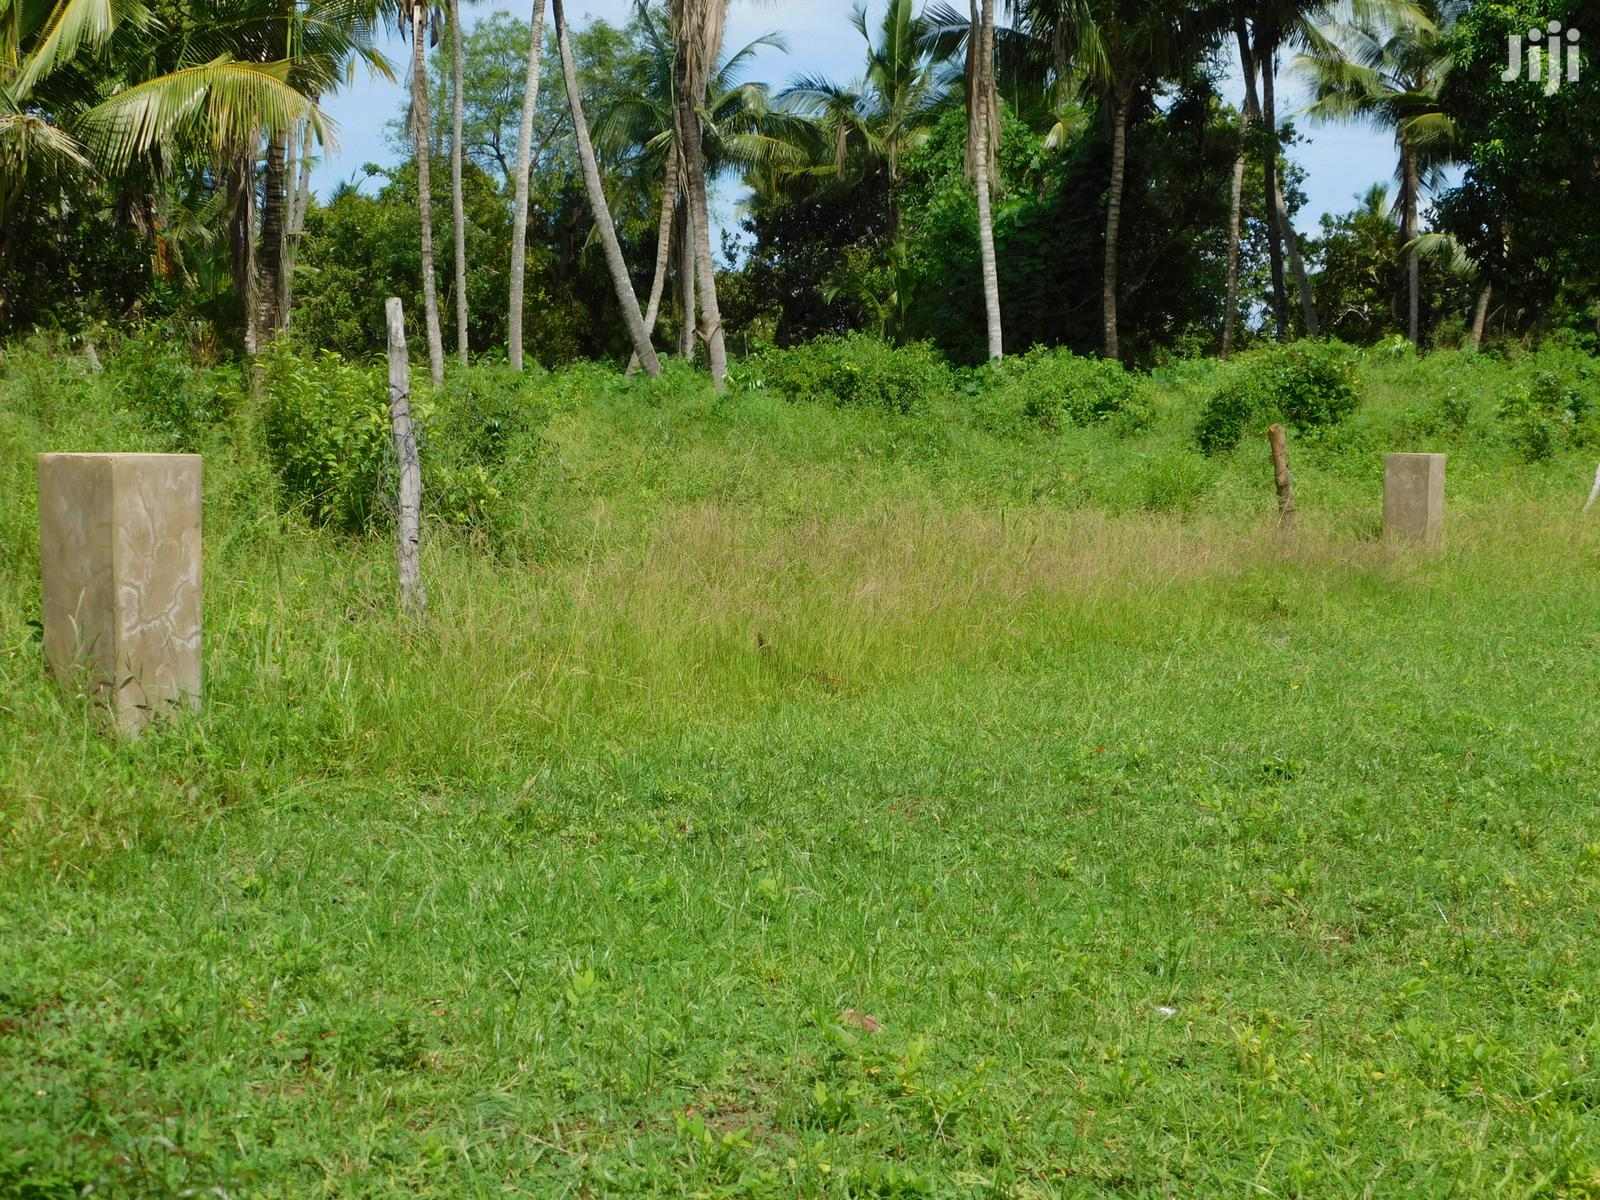 Quarter Acre of Land on Sale Near Vipingo Main Gate-Benford Homes